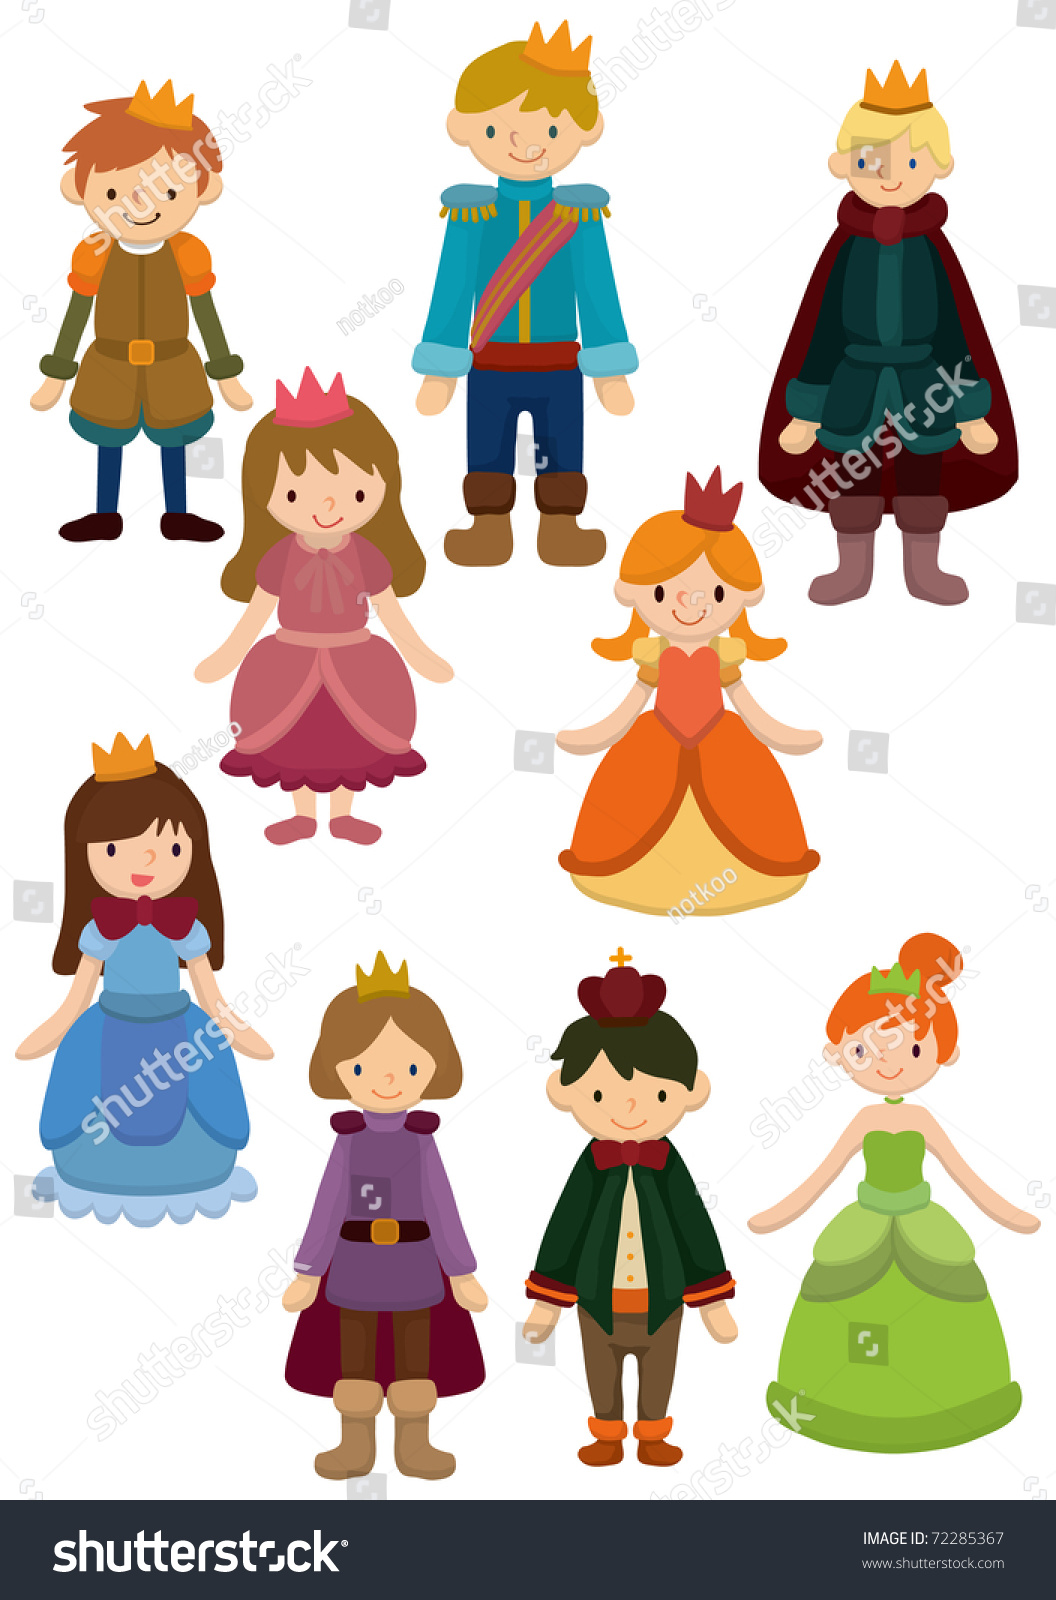 Cartoon prince and princess icon stock vector illustration - Images princesse ...